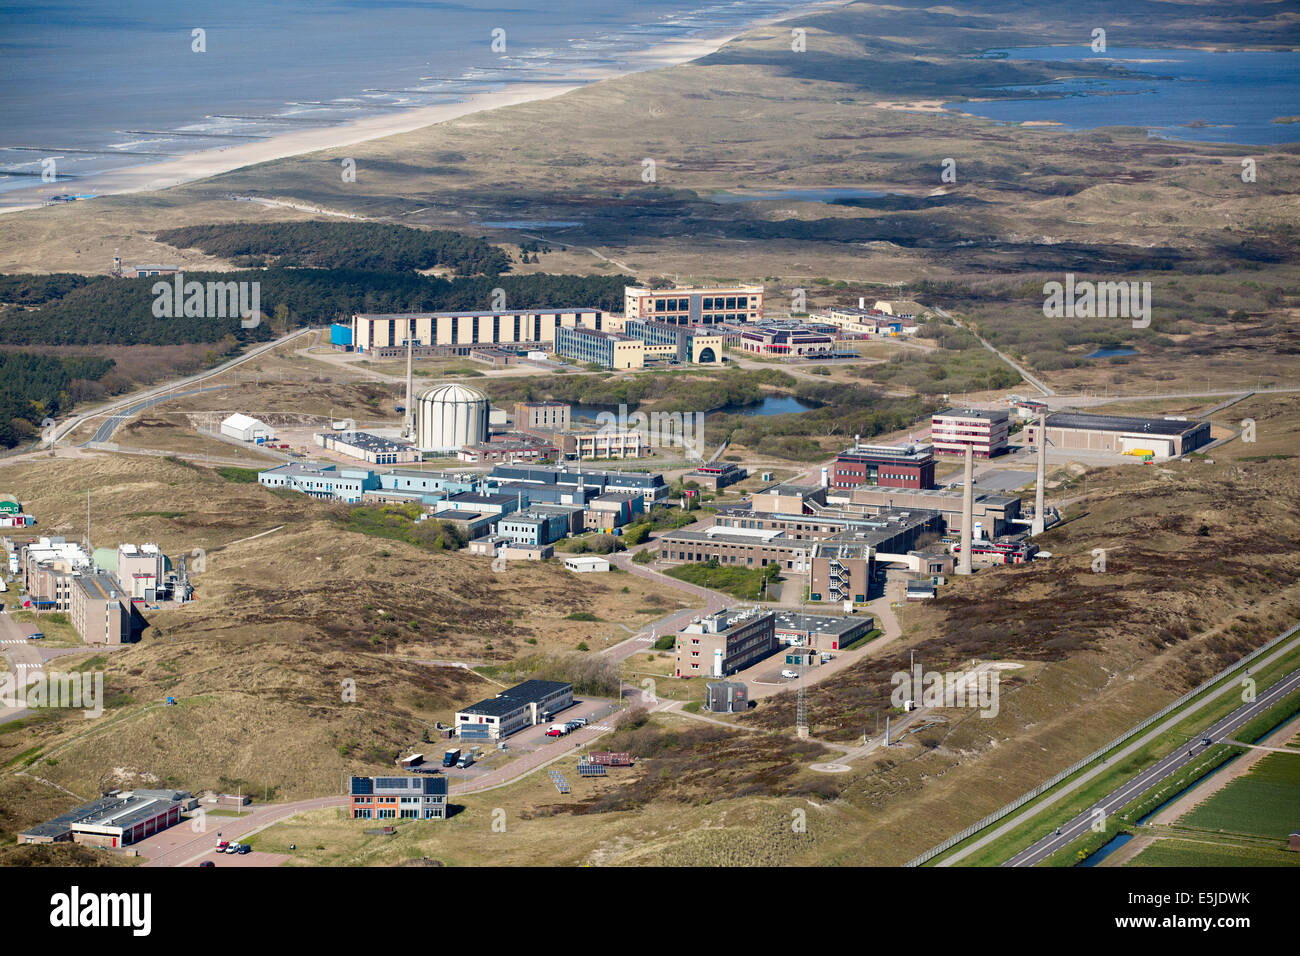 Netherlands, Petten, Nuclear research reactors. The nuclear facilities supply medical isotopes. Aerial - Stock Image